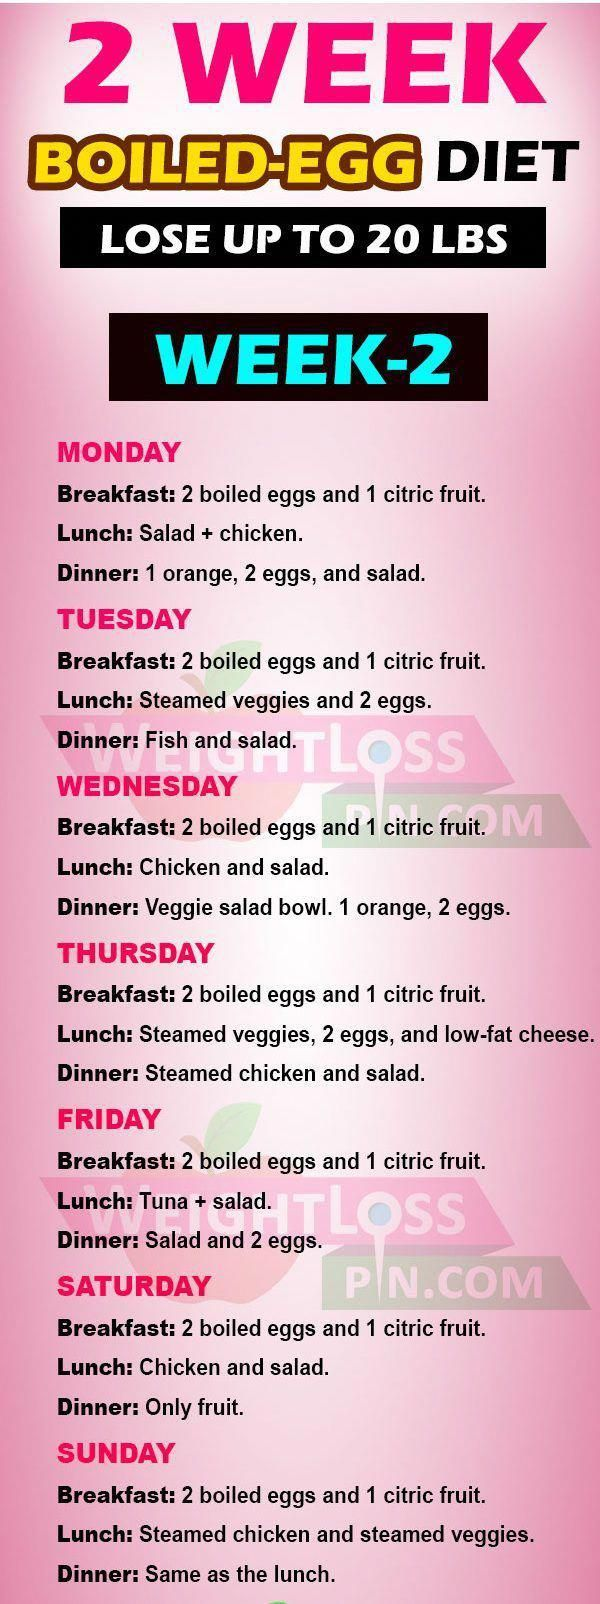 Keto Diet Plan For Over 60 Cyclicalketogenicdietmealplan Boiled Egg Diet Boiled Egg Diet Plan Egg Diet